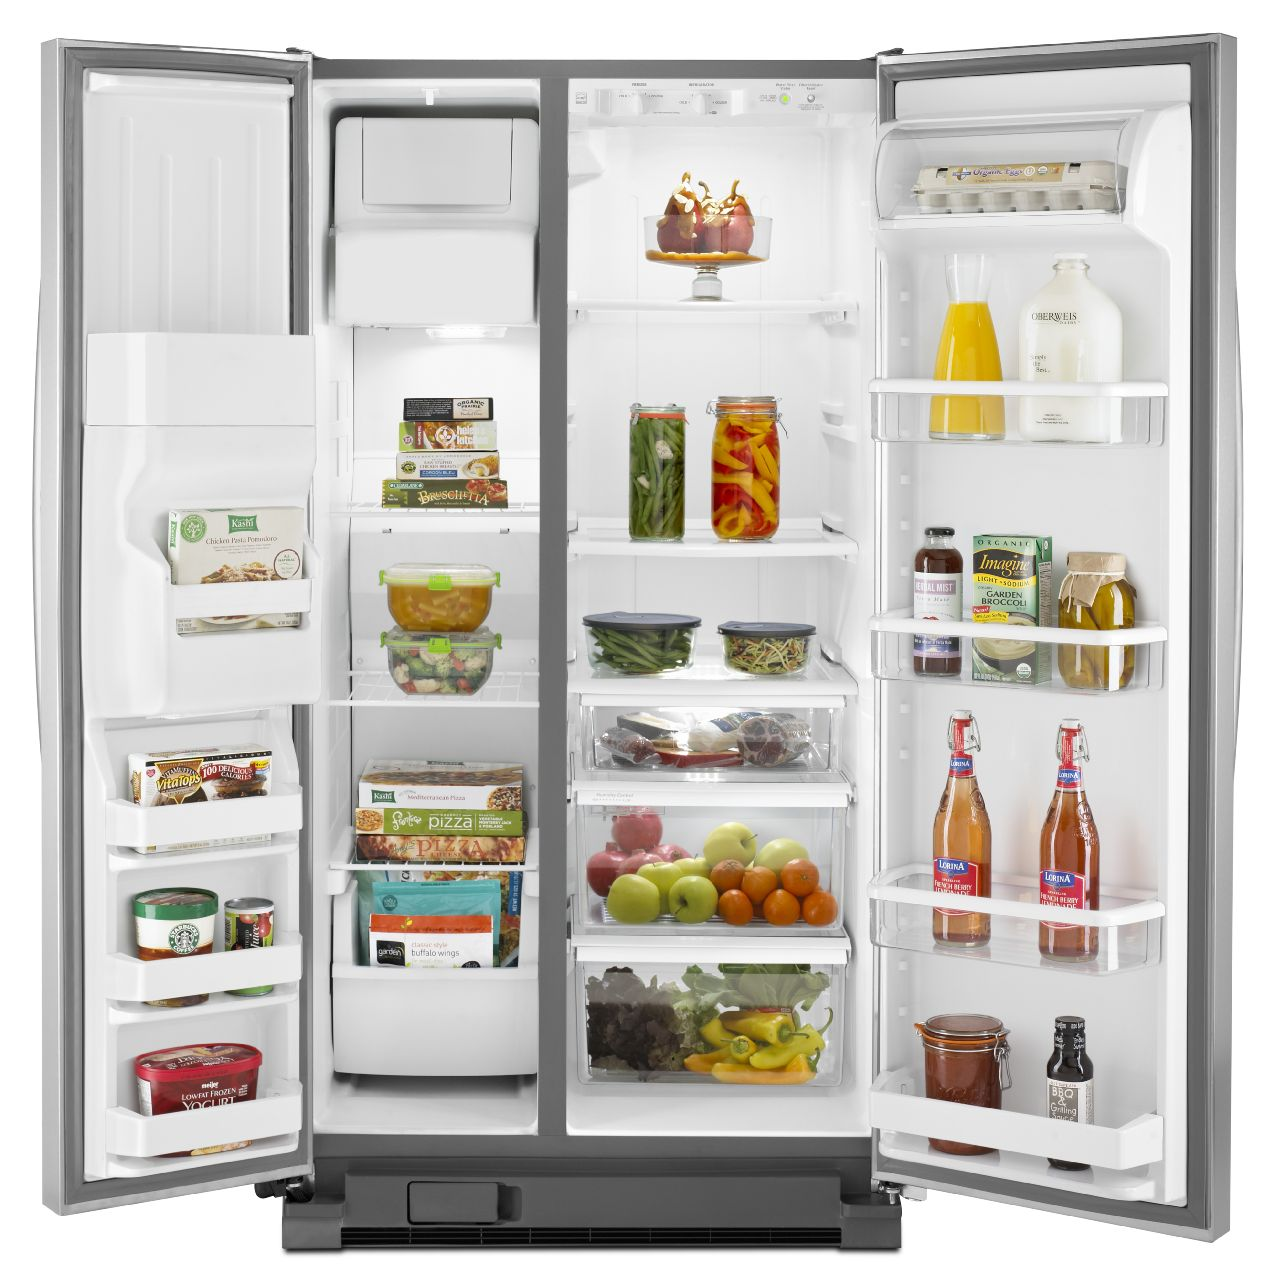 Whirlpool 25.0 cu. ft. Side-by-Side Refrigerator w/ Accu-Chill™ - Stainless Steel